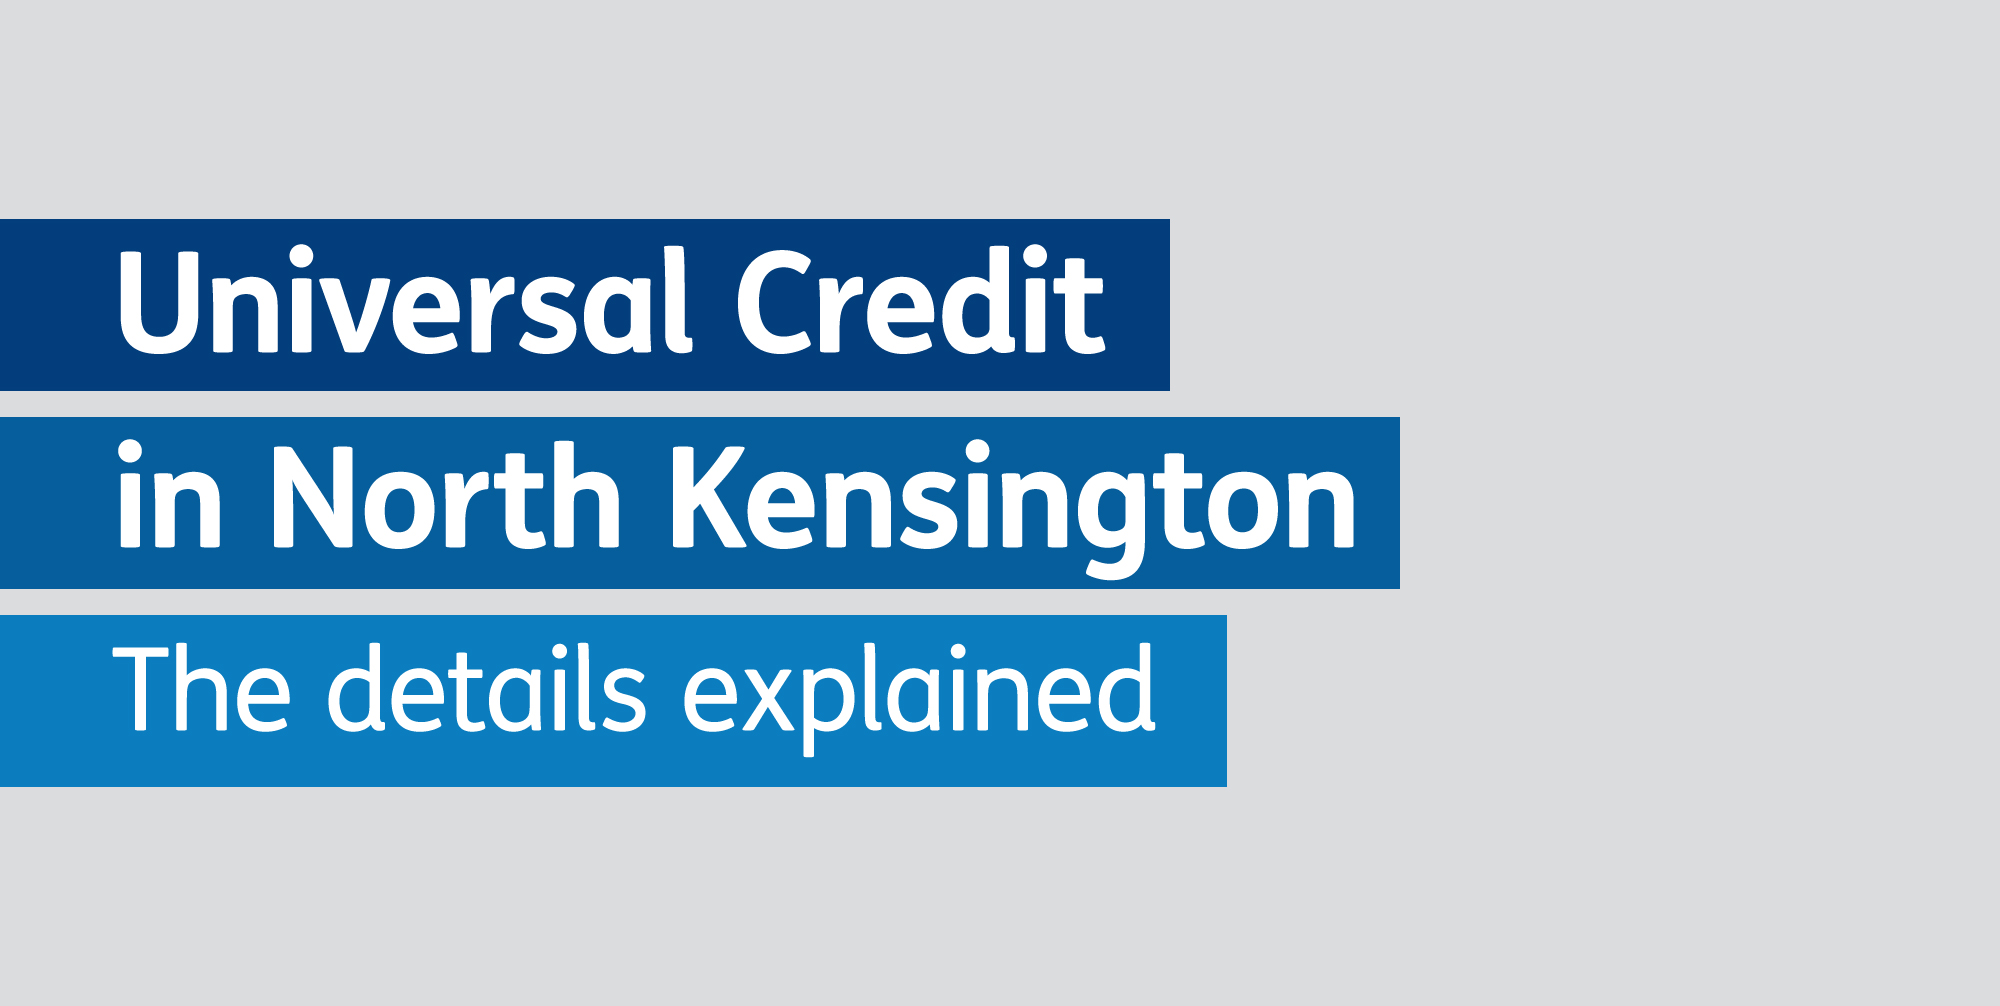 Universal Credit in North Kensington: the details explained